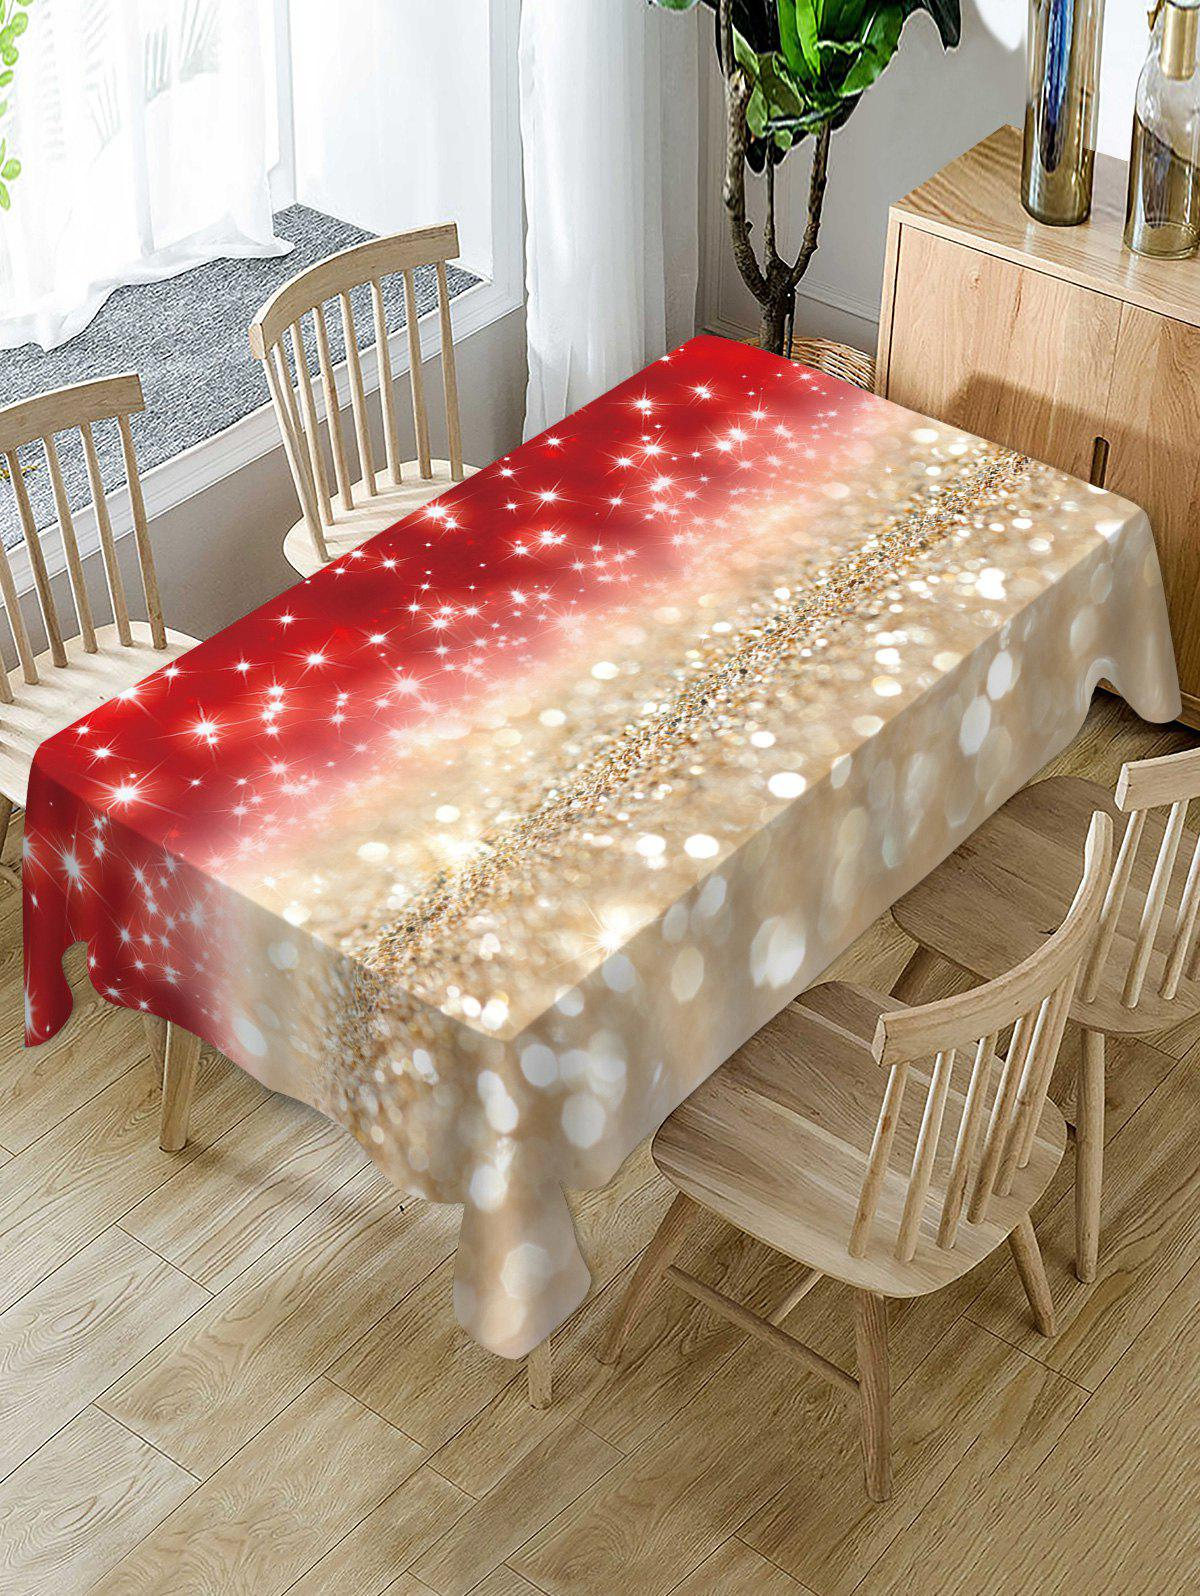 Latest Christmas Star Light Fabric Waterproof Table Cloth